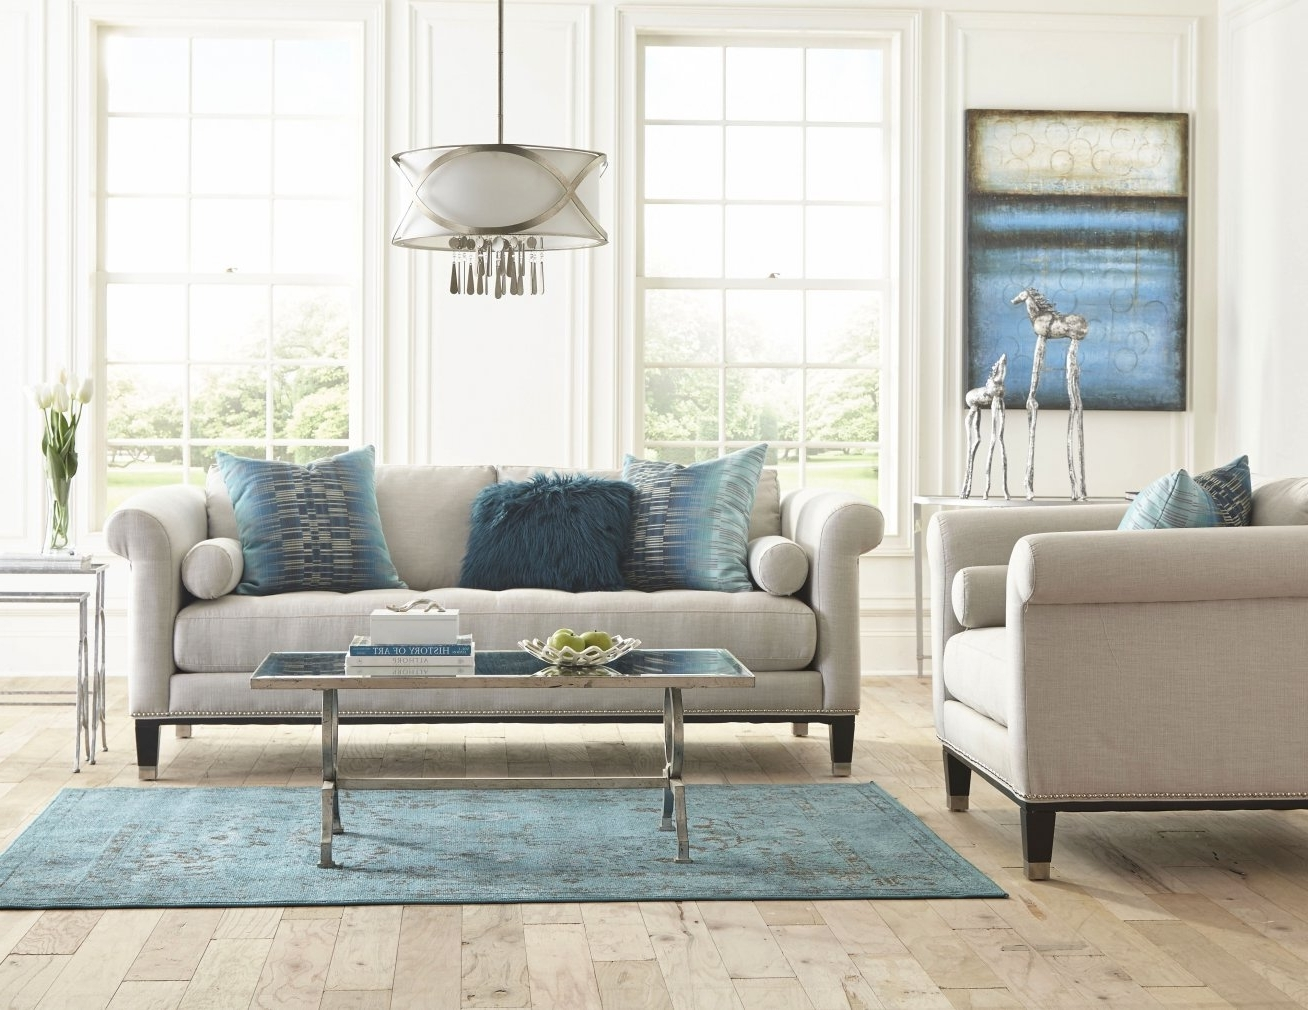 Trend Dillards Sofas 54 With Additional Sofas And Couches Ideas Pertaining To 2018 Dillards Sectional Sofas (View 13 of 20)